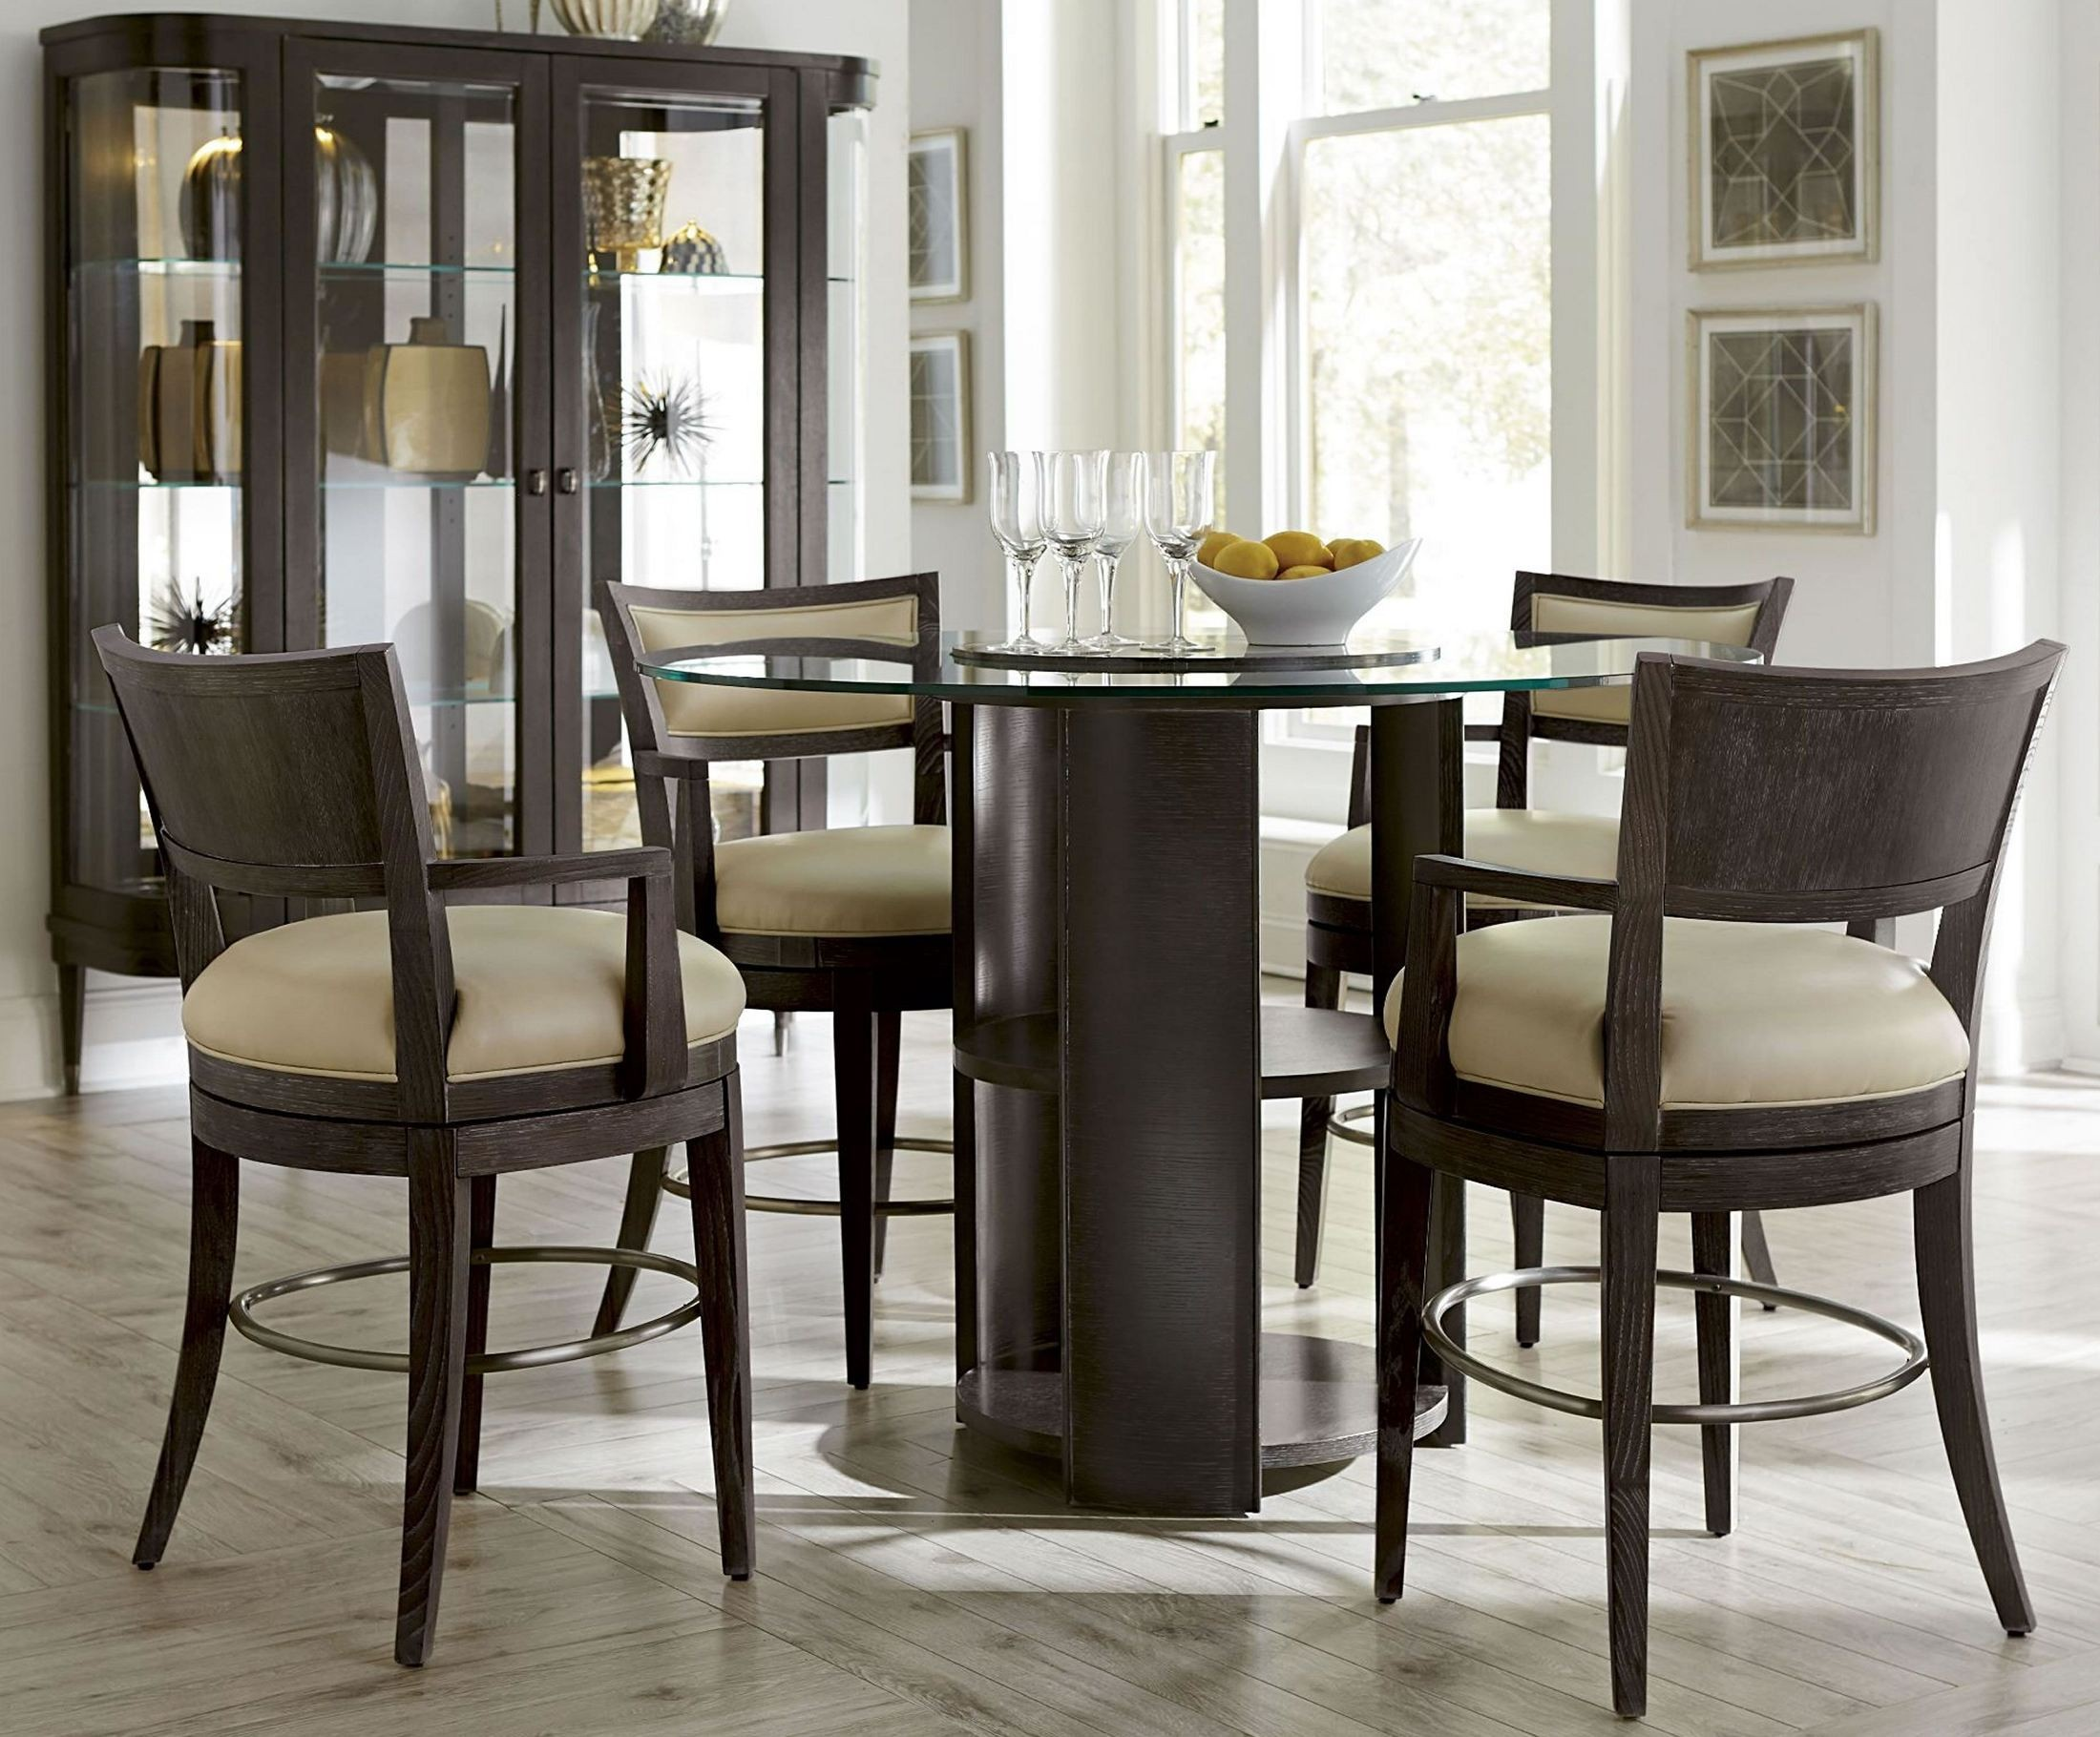 Greenpoint High Dining Room Set From ART 214230 2304